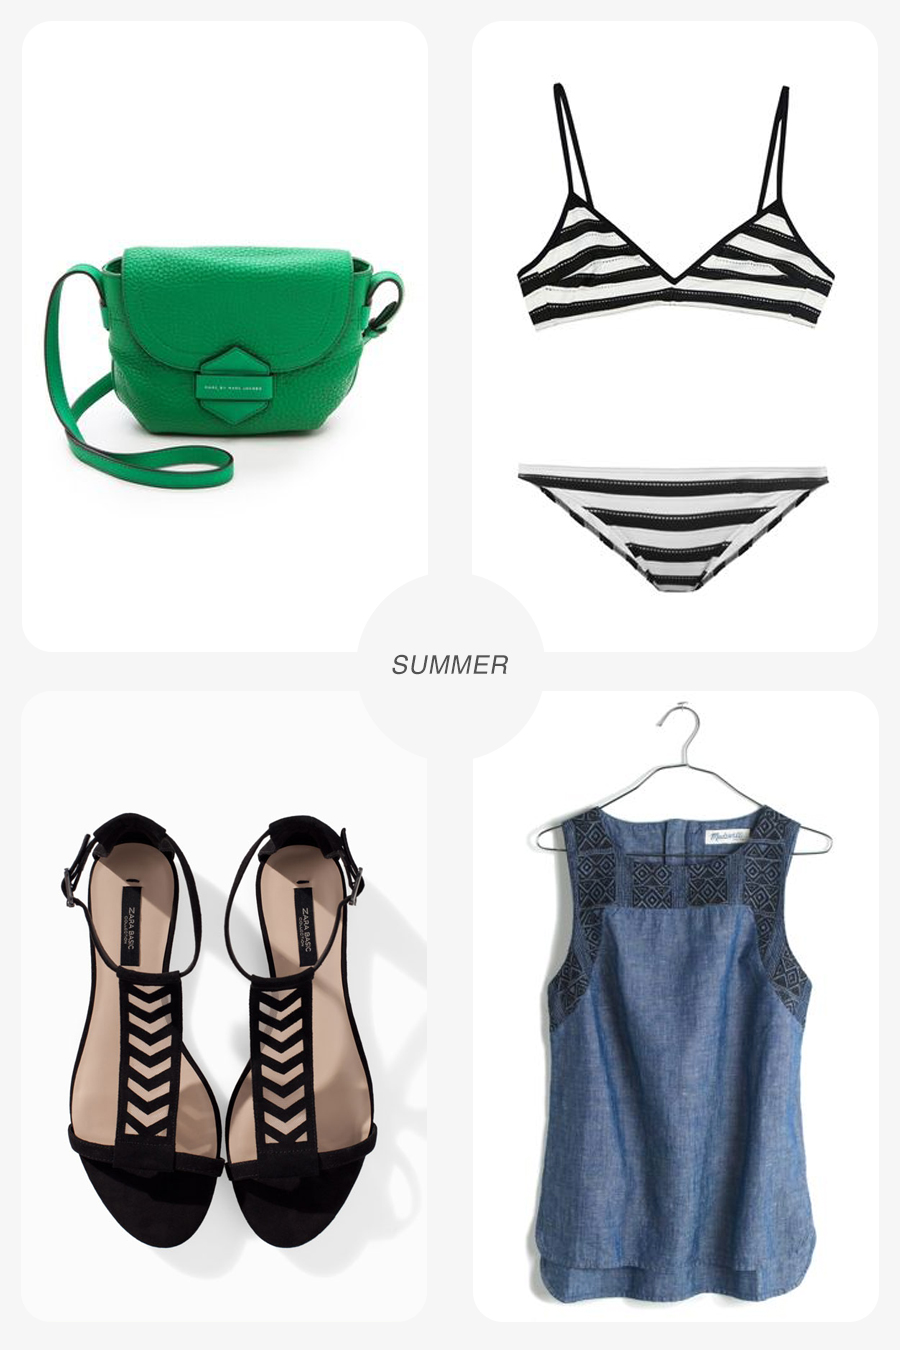 Clockwise from top left: Marc by Marc Jacobs bag/ Shopbop ; Chloe Swimwear/ MatchesFashion ; Linen Shirt/ Madewell ; Lattice sandal/ Zara